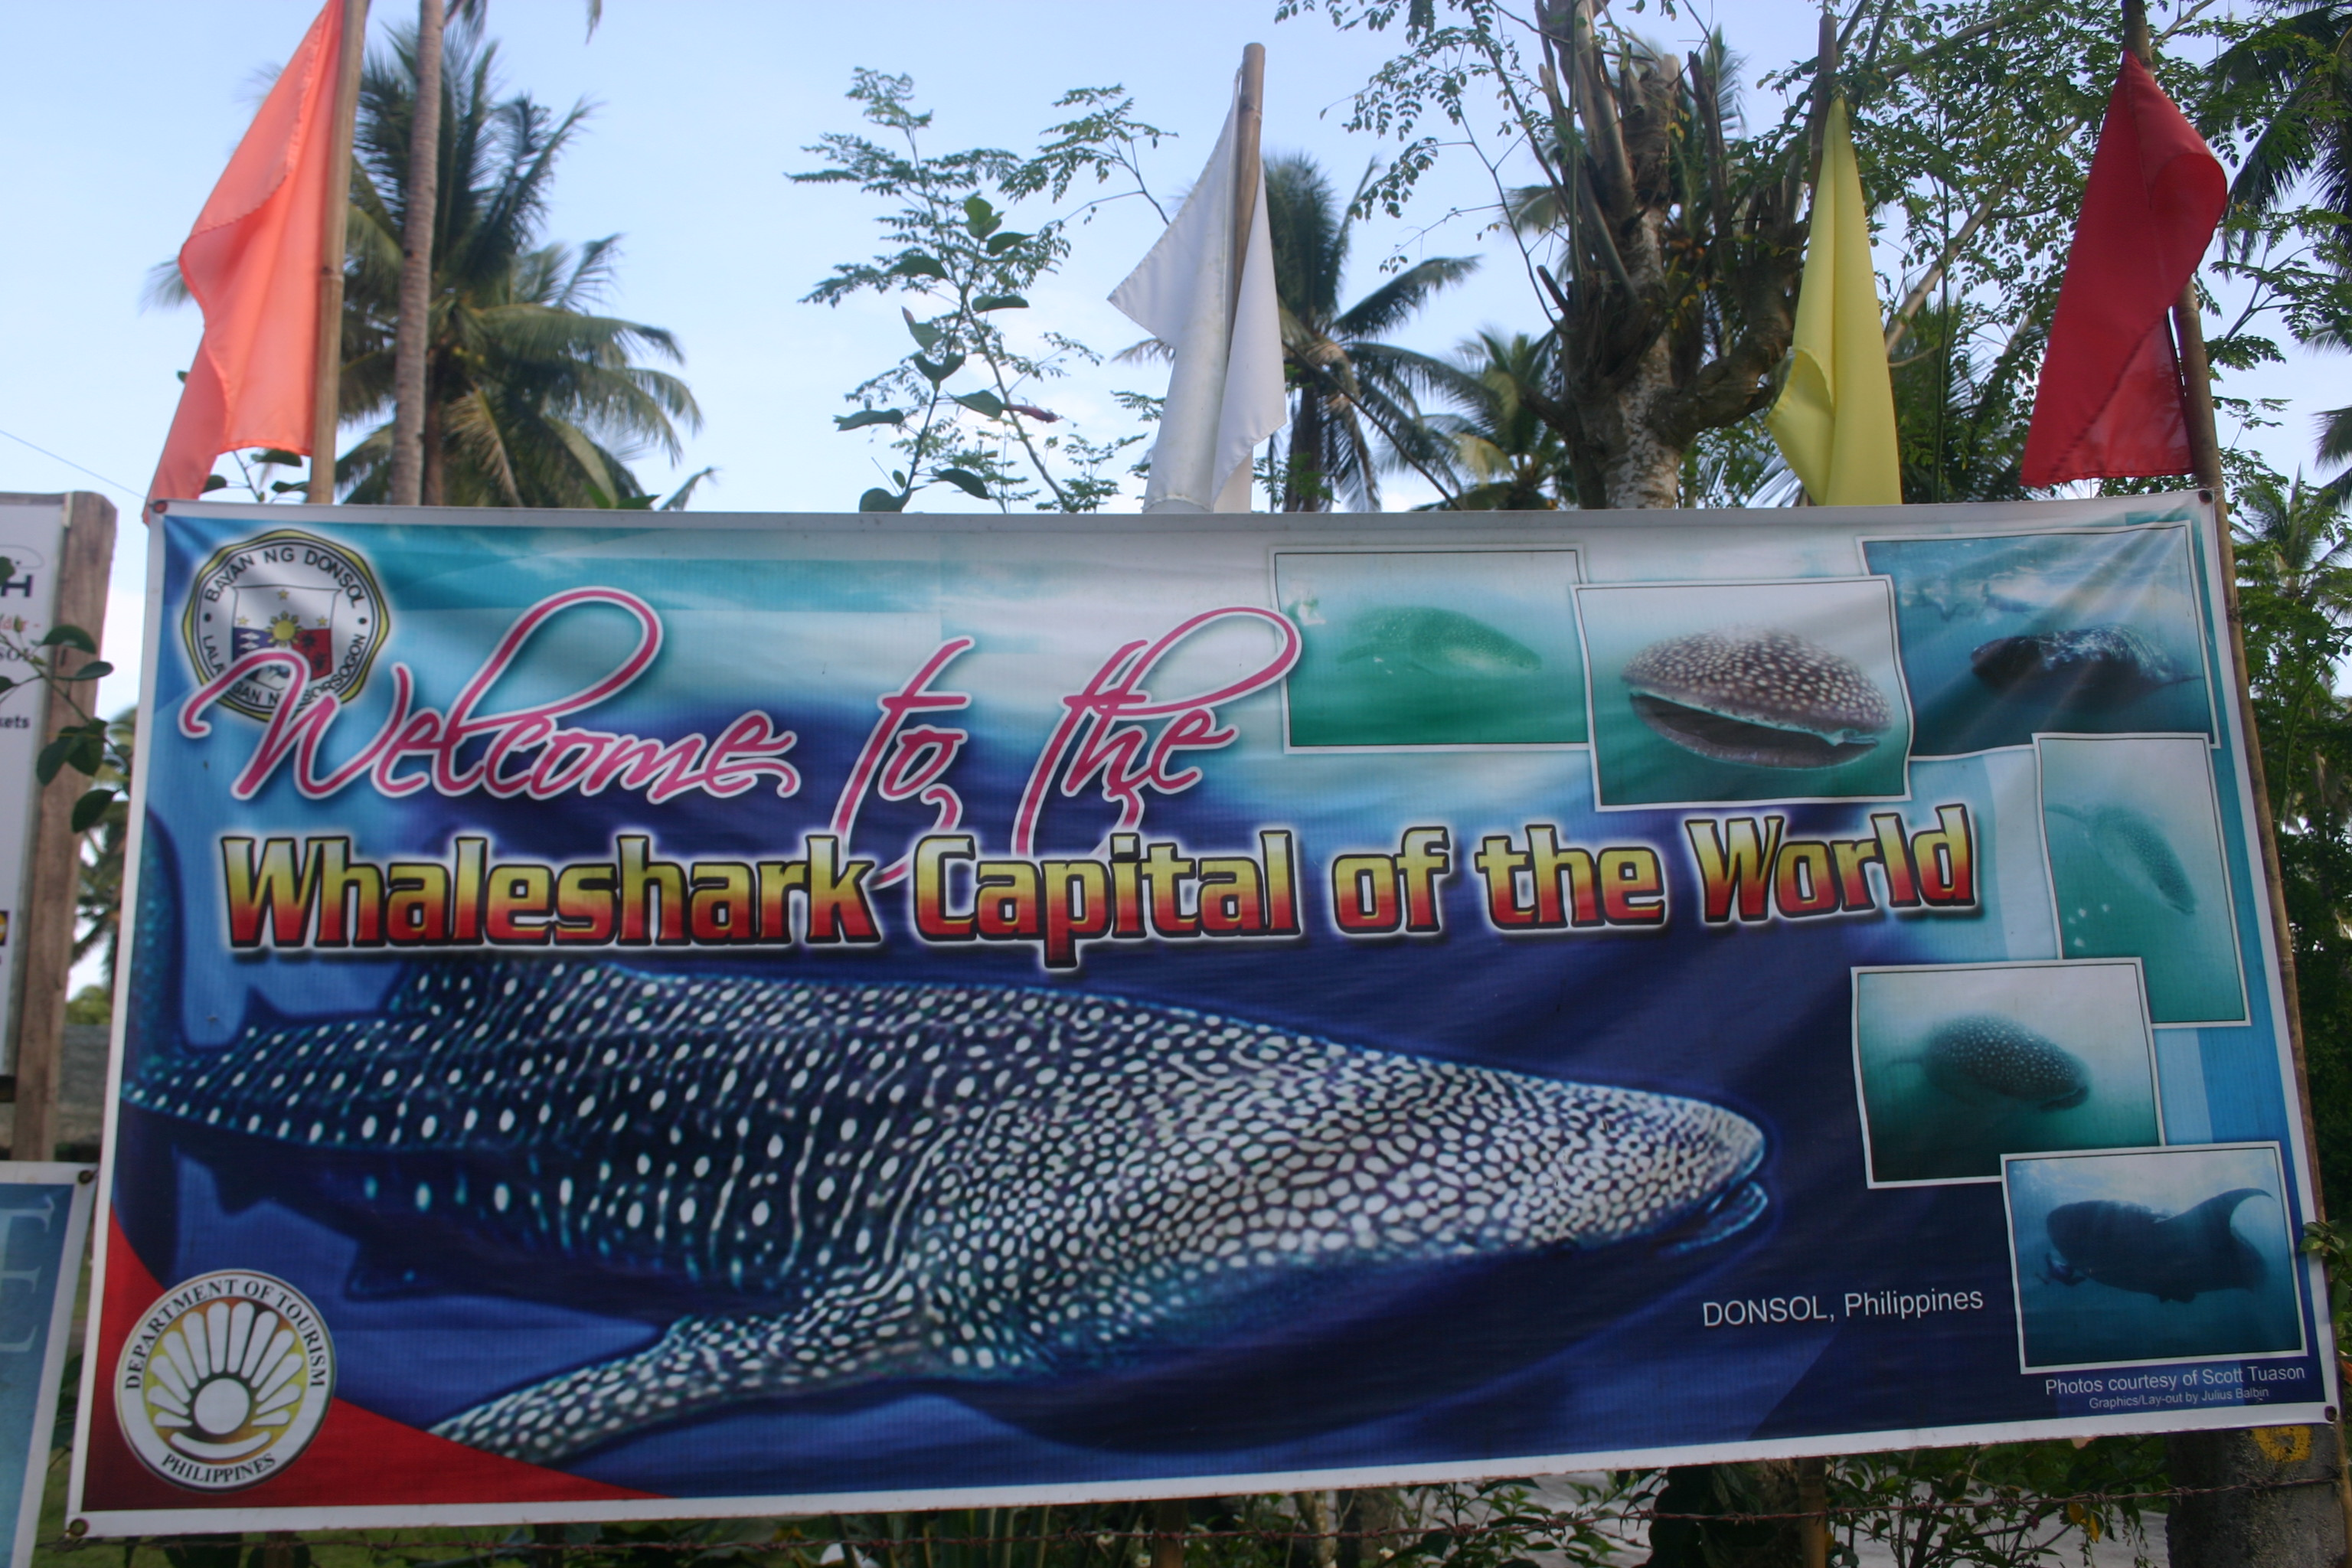 Donsol, the whale shark capital of the world